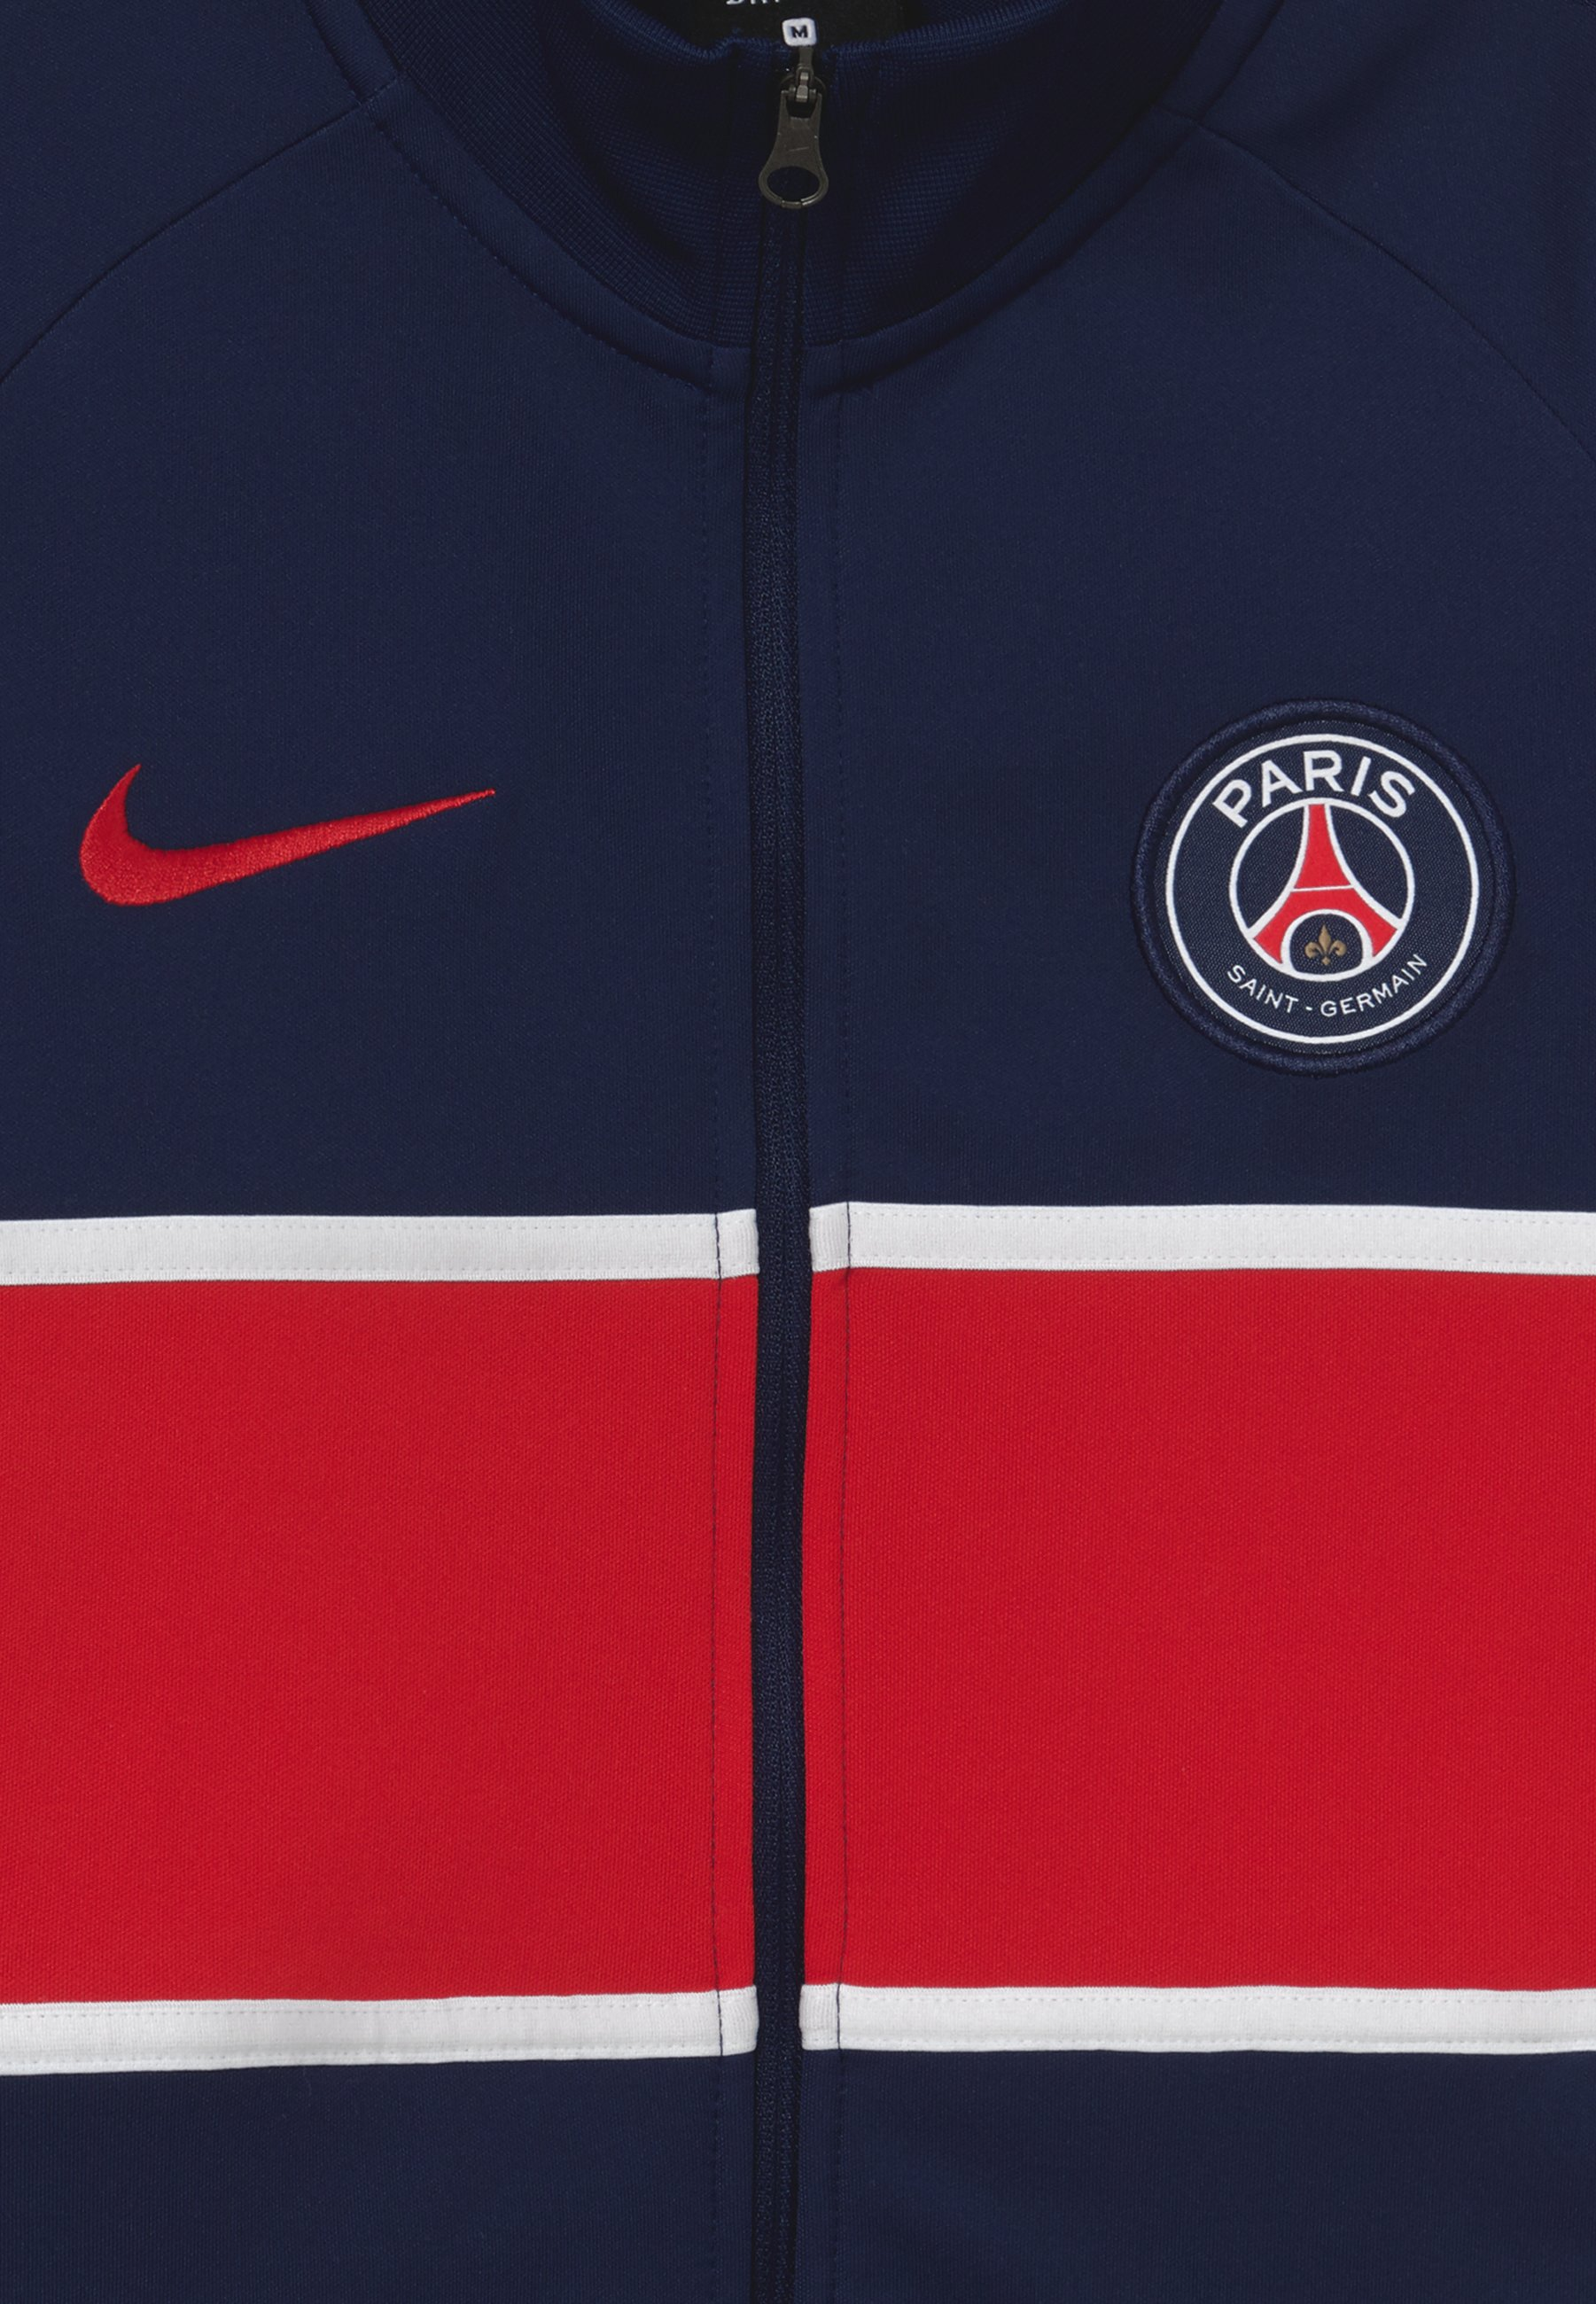 Nike Performance Paris St Germain - Club Wear Midnight Navy/university Red